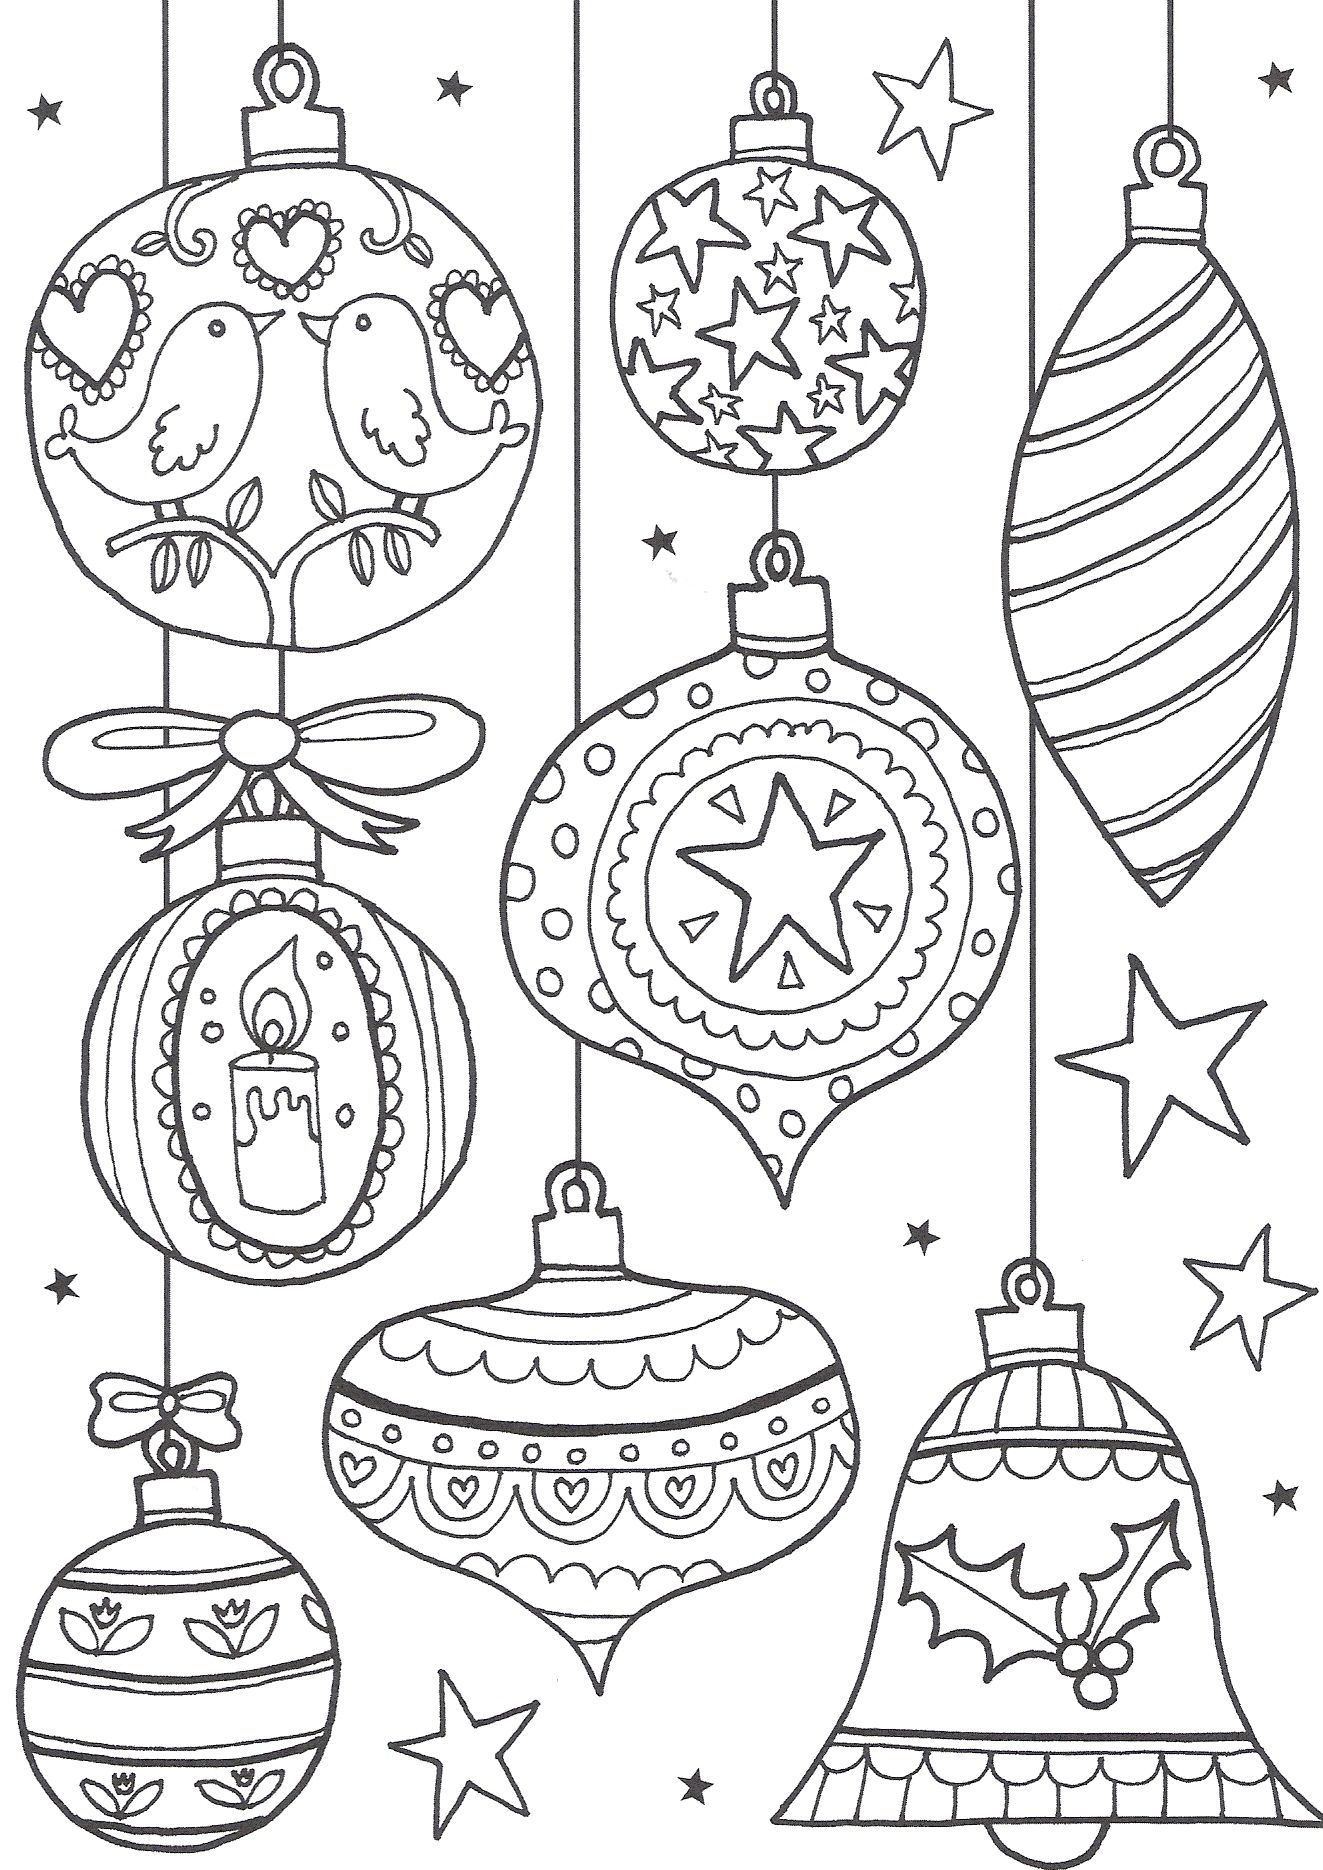 Christmas Coloring With Free Colouring Pages For Adults The Ultimate Roundup